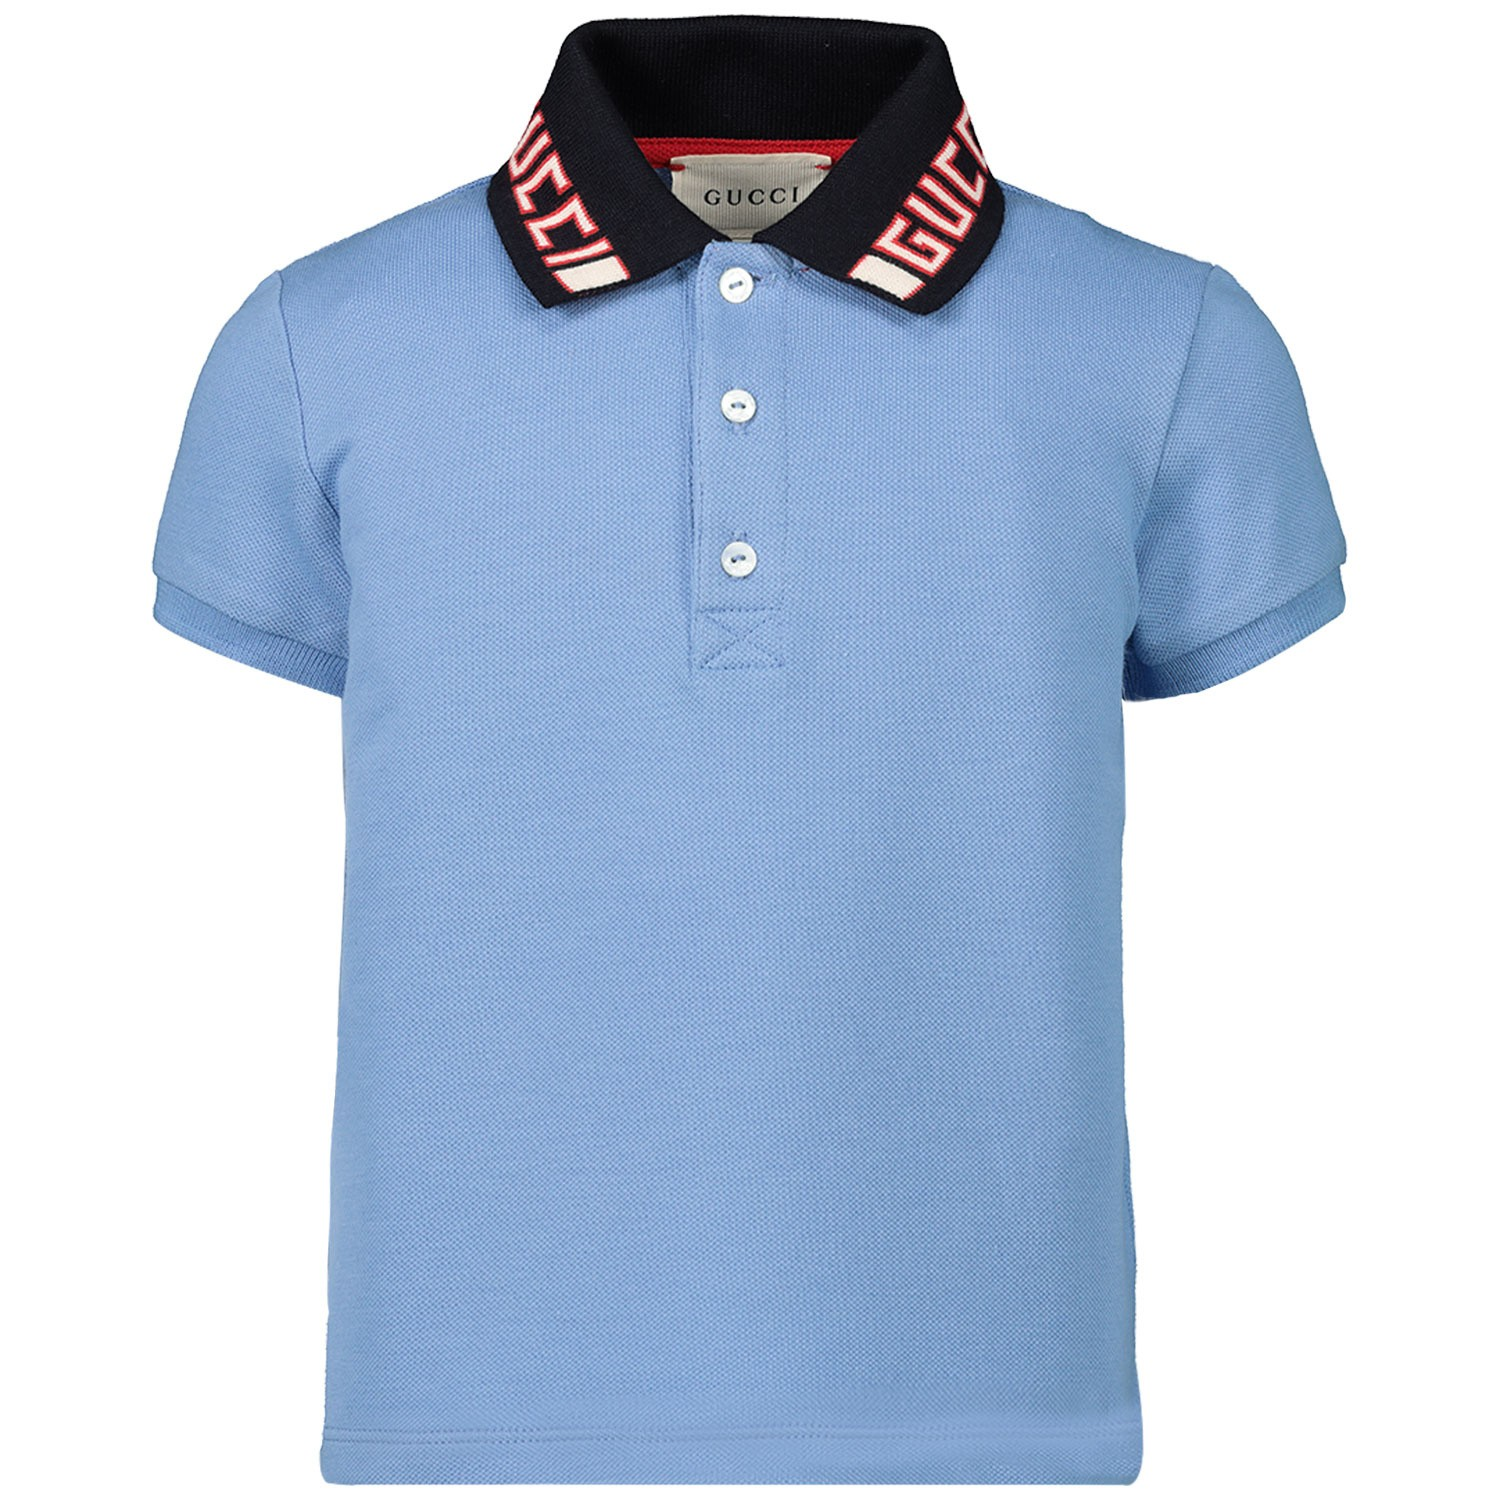 Picture of Gucci 522346 baby poloshirt light blue